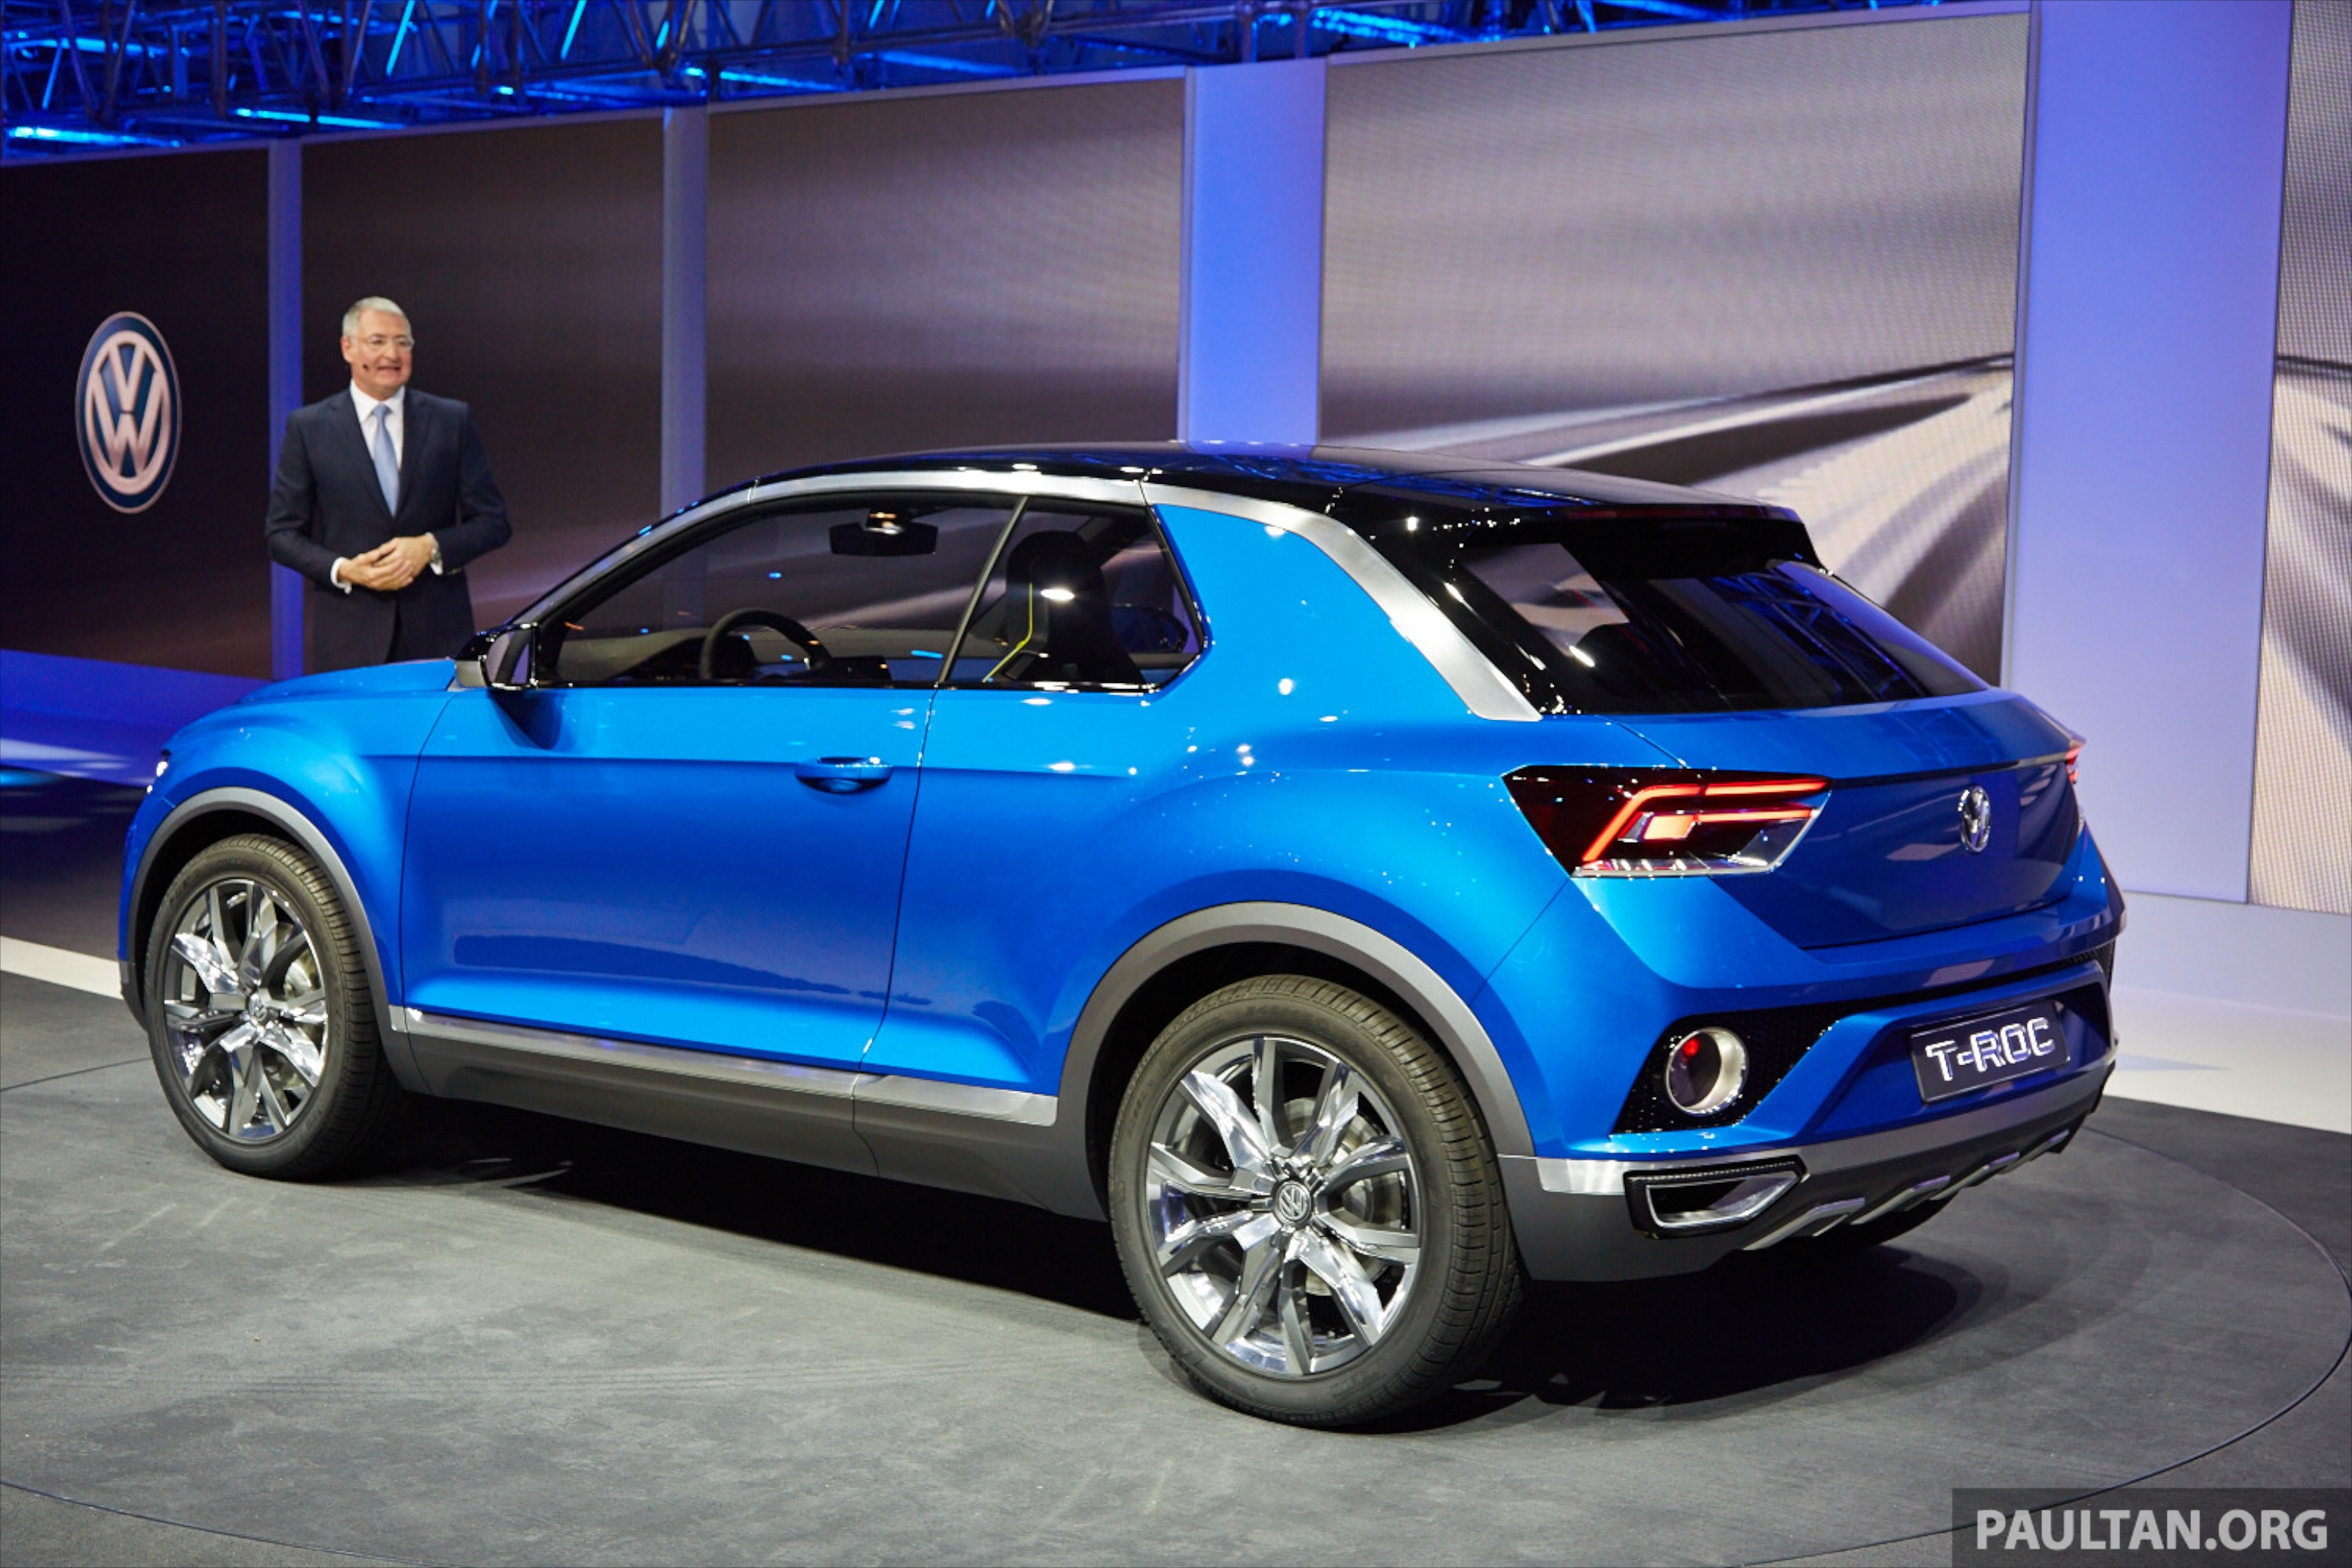 2018 Volkswagen Suv >> Volkswagen T-ROC Concept previews upcoming SUV Image 232471